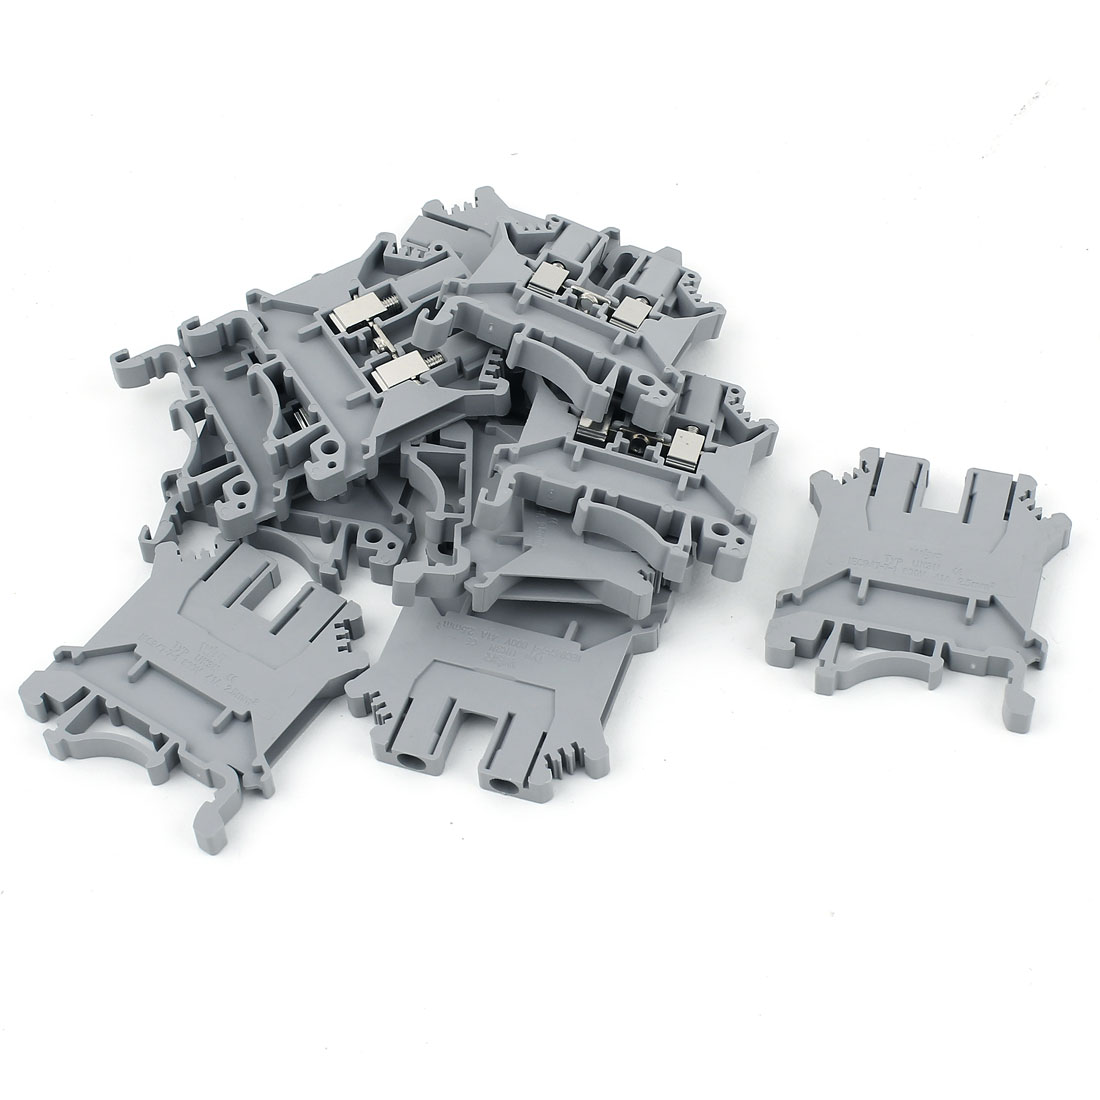 10 Pcs UK3N 0.2-2.5mm2 Wire Guide Rail Terminal Block Gray 800V 32A